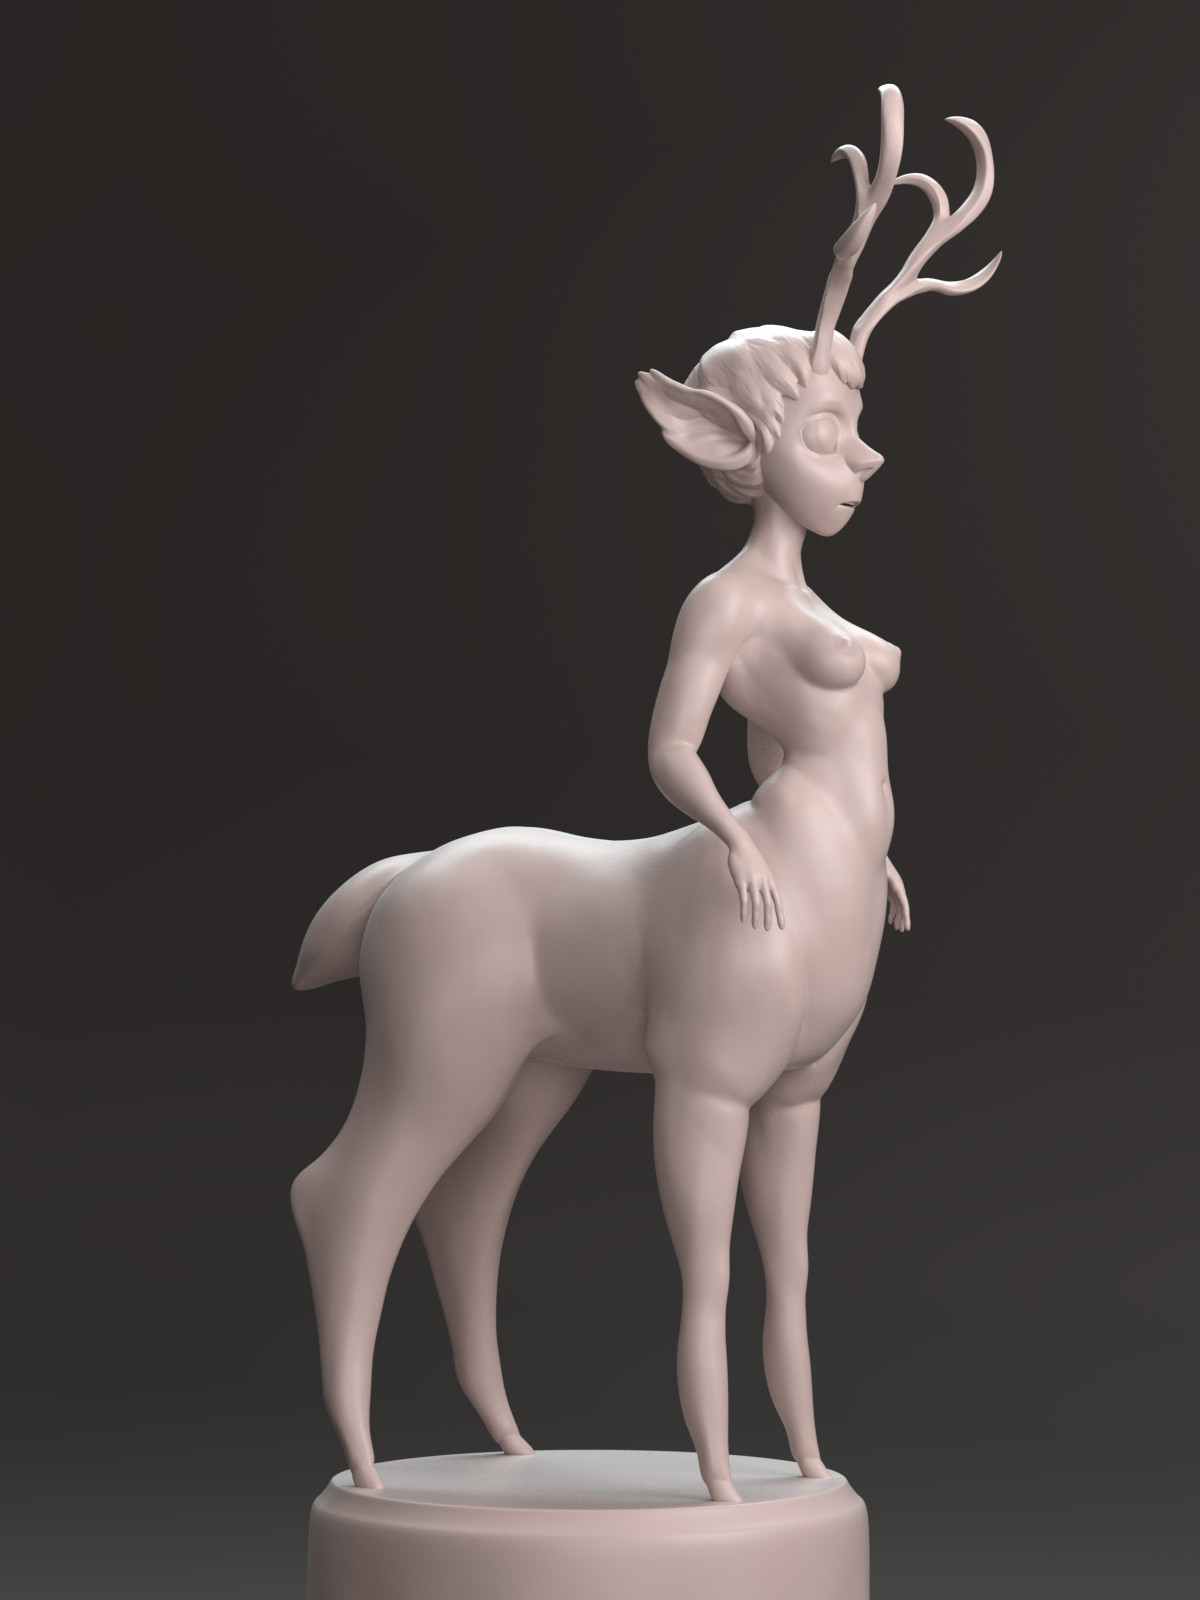 Sculpt rendered in Cycles